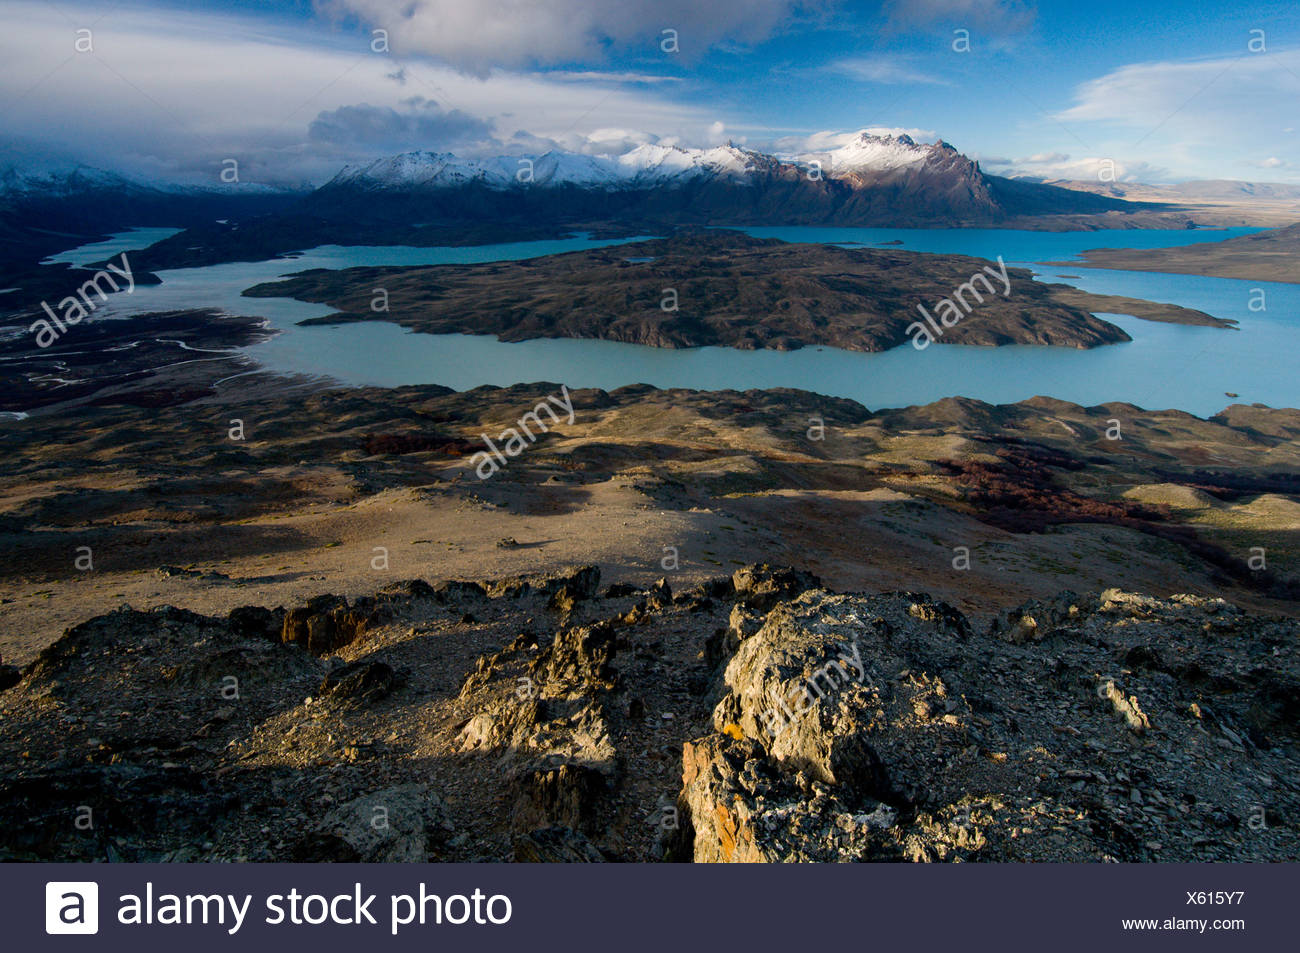 A scenic vista of Lago Belgrano and Peninsula Belgrano in Perito Moreno National Park, Argentina - Stock Image